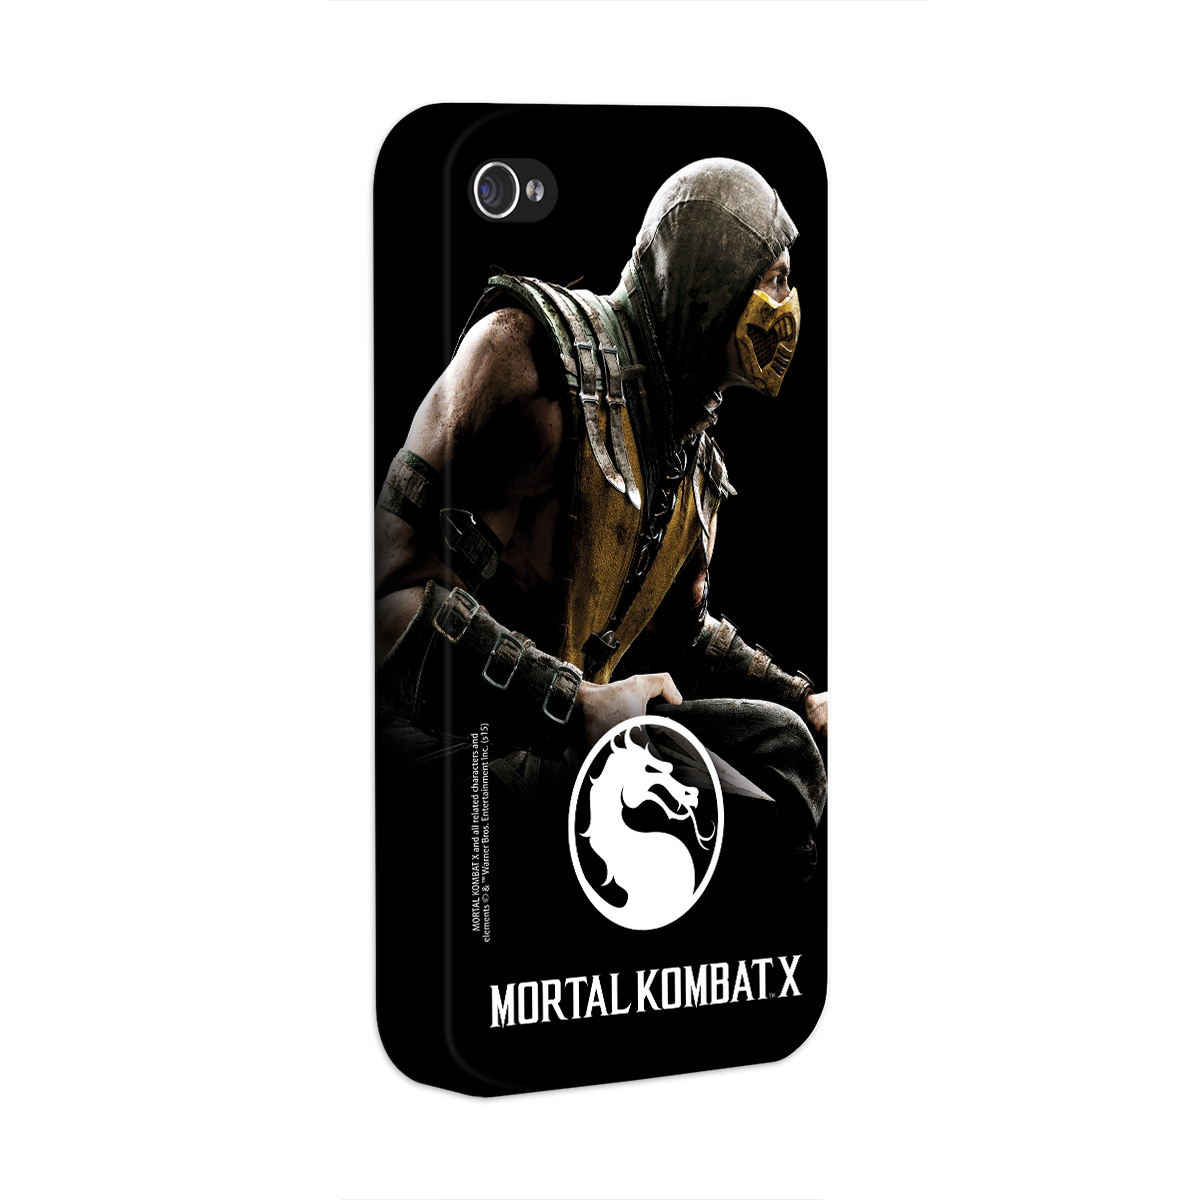 Capa para iPhone 4/4S Mortal Kombat X Capa  - bandUP Store Marketplace